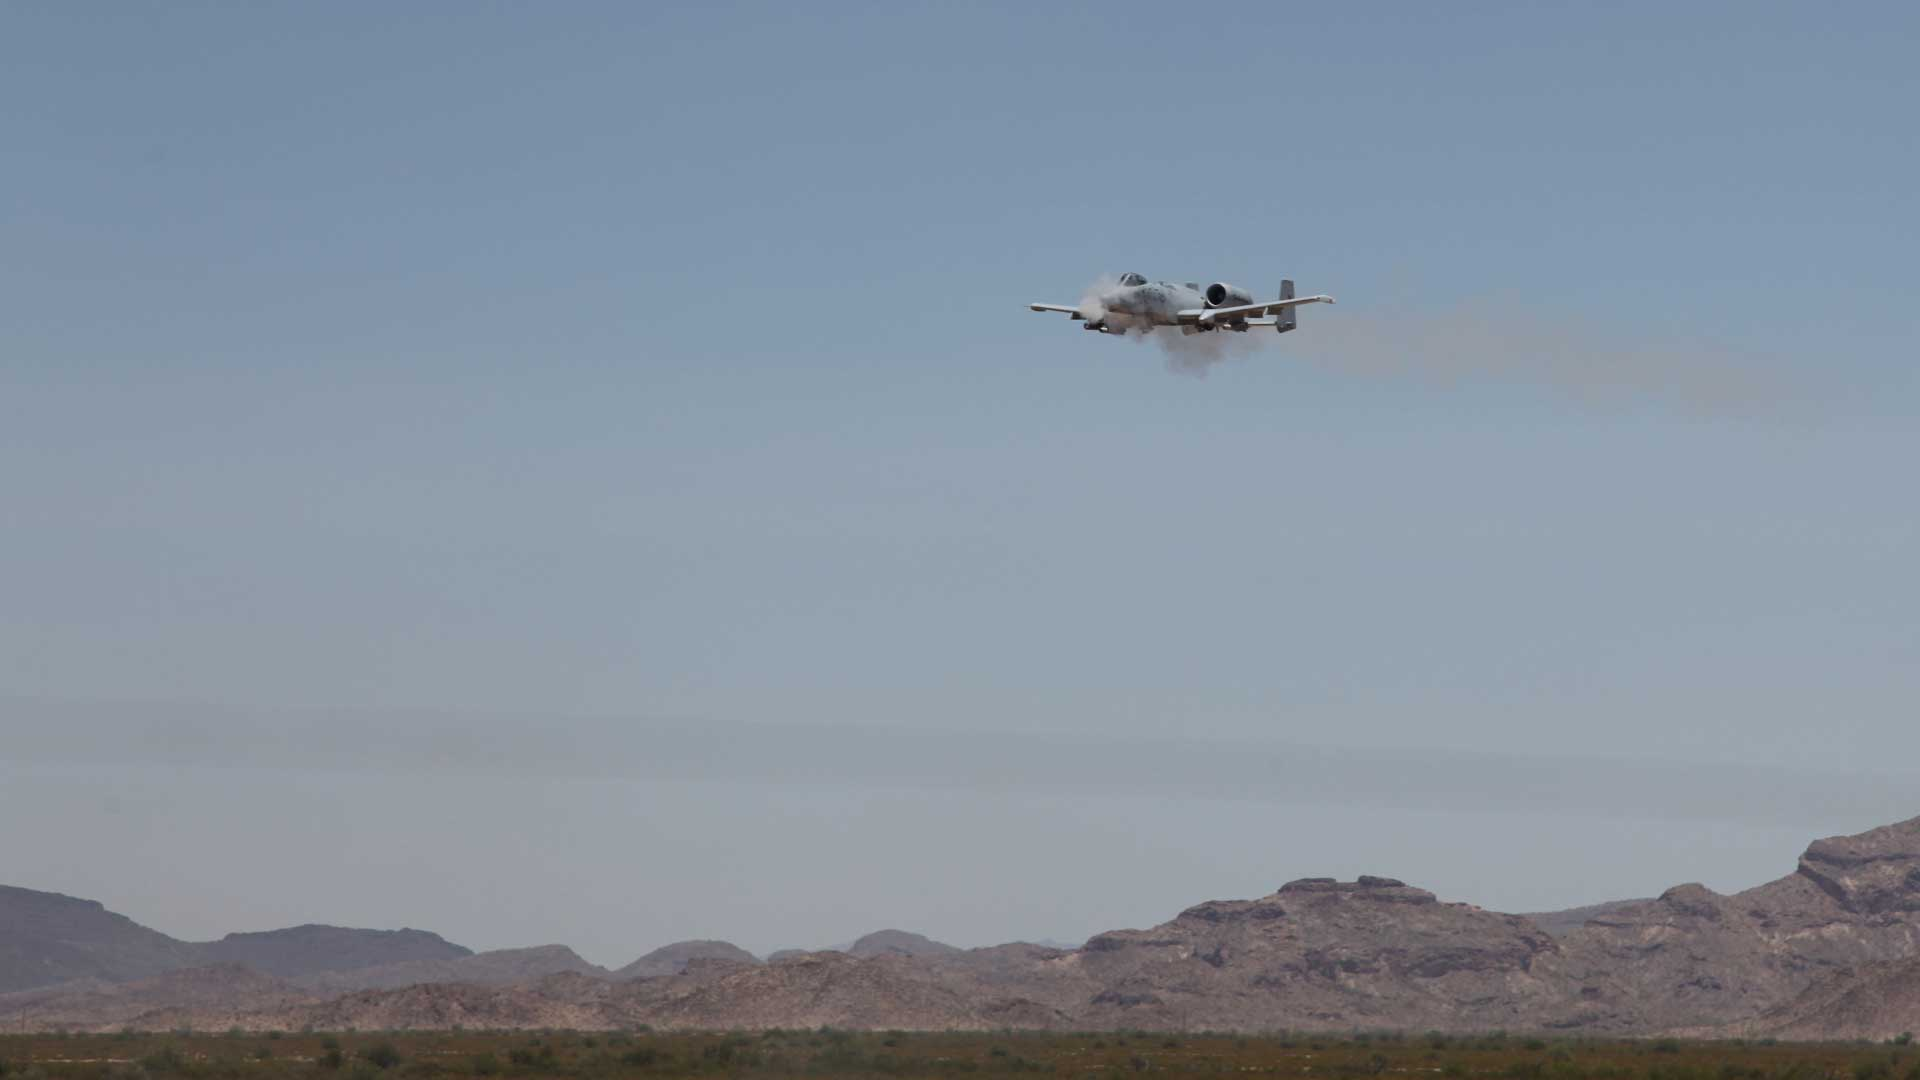 An A-10 firing over the Barry Goldwater Range in Gila Bend, Arizona, during Hawgsmoke 2016.